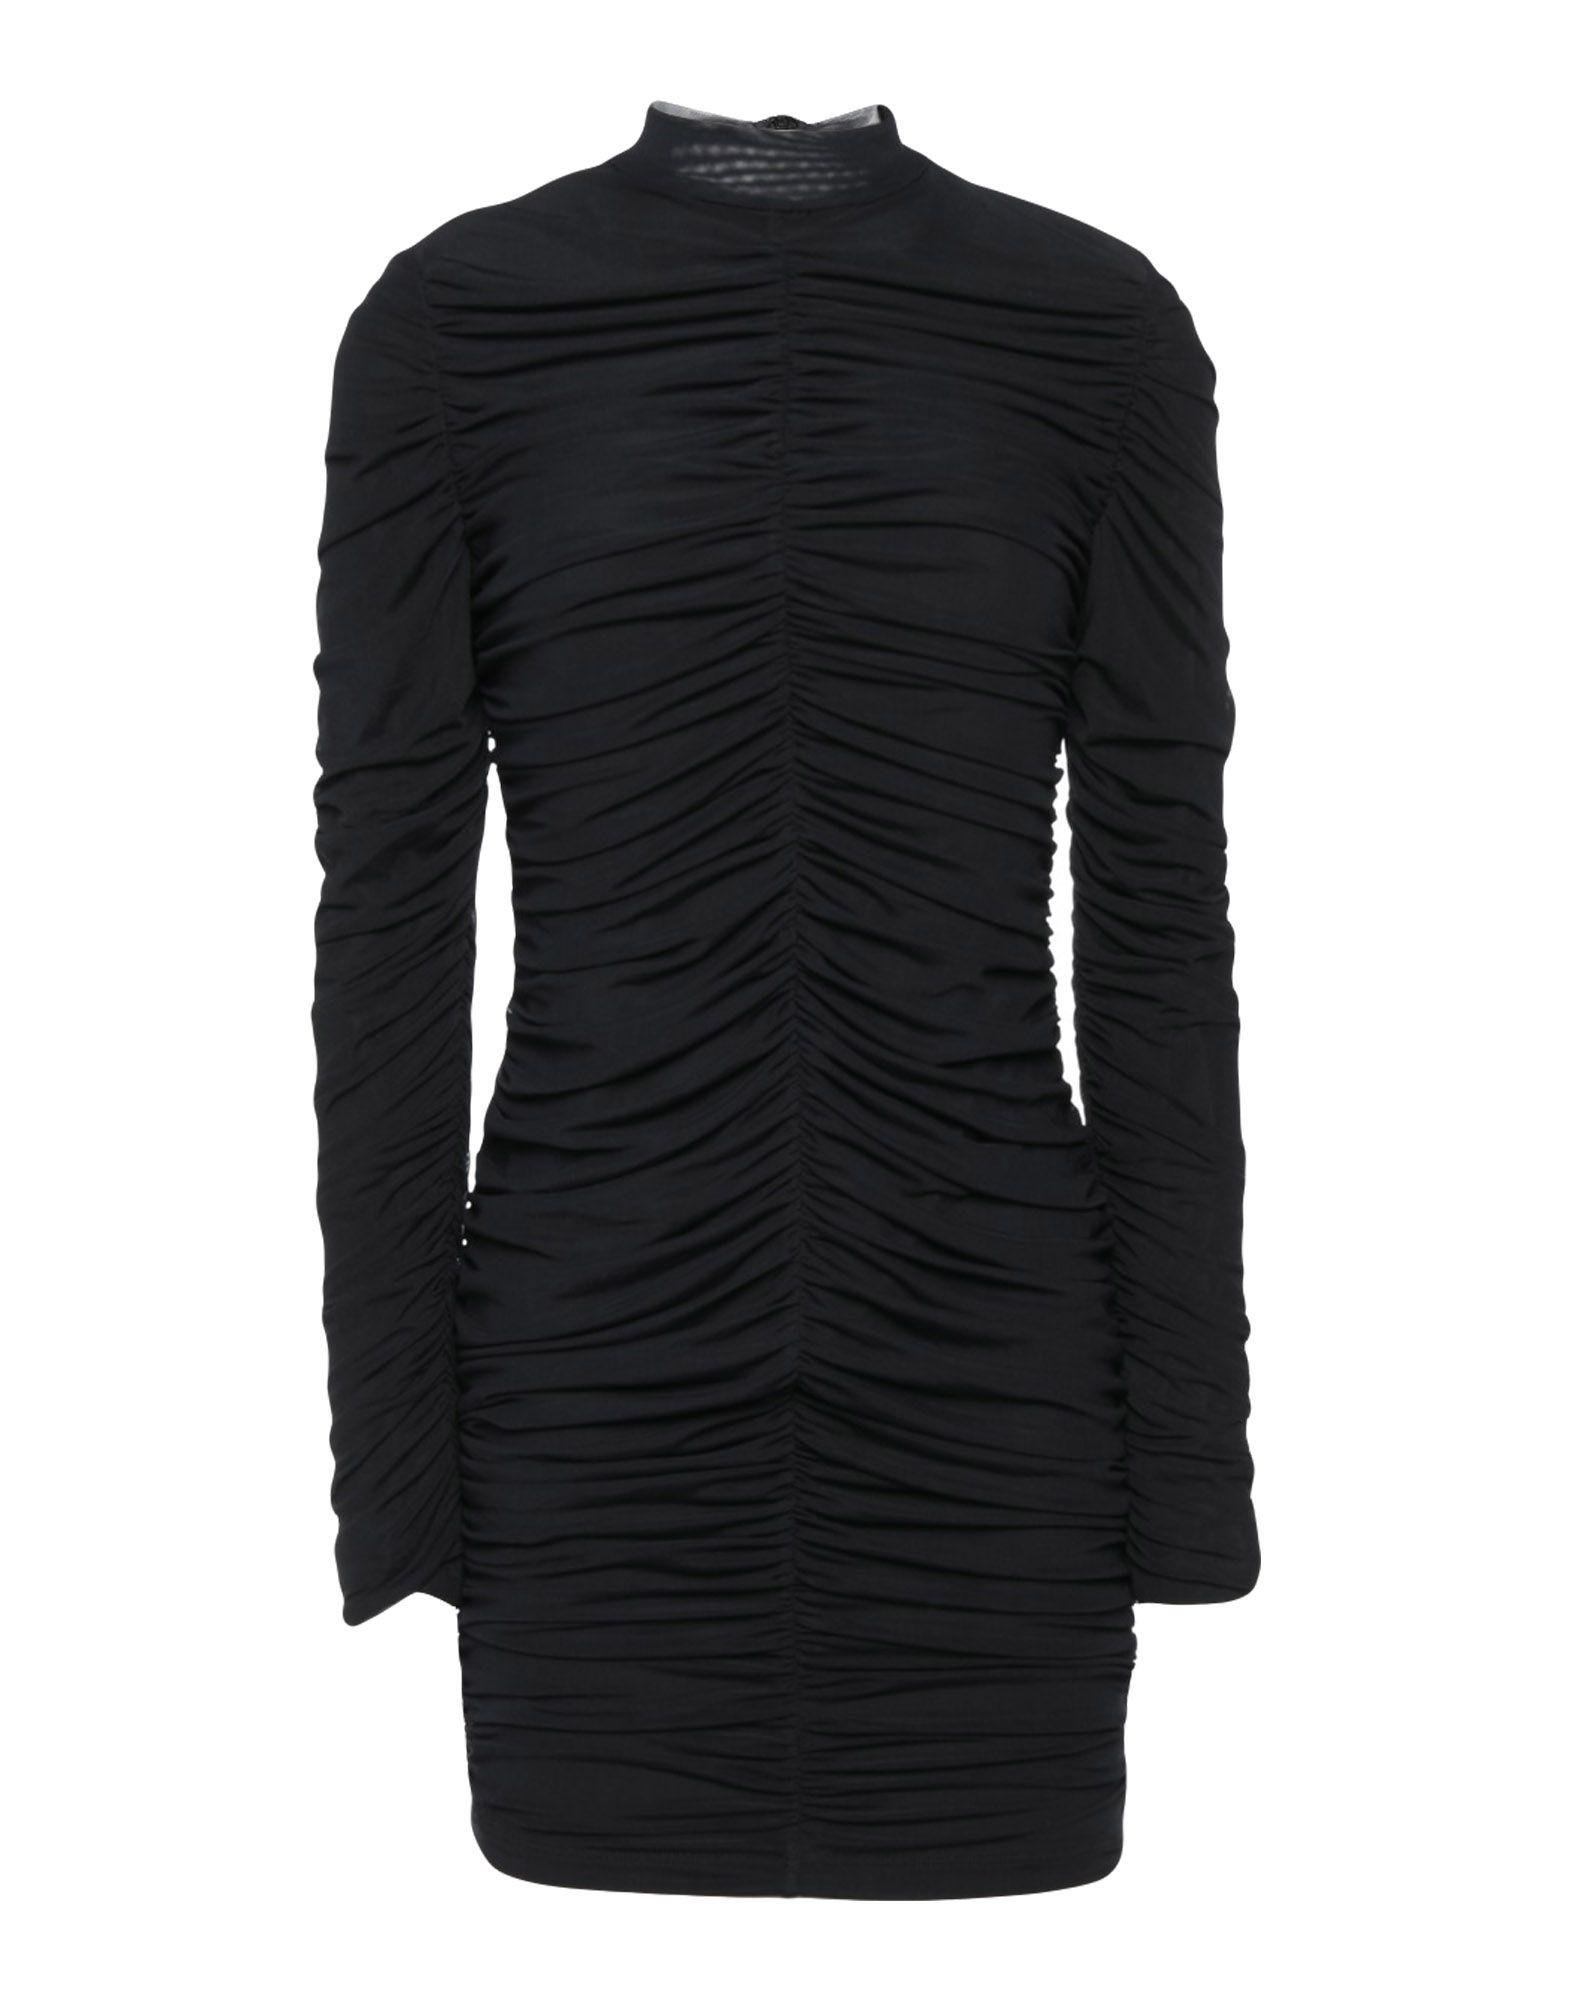 Guess Synthetic Short Dress in Black - Lyst